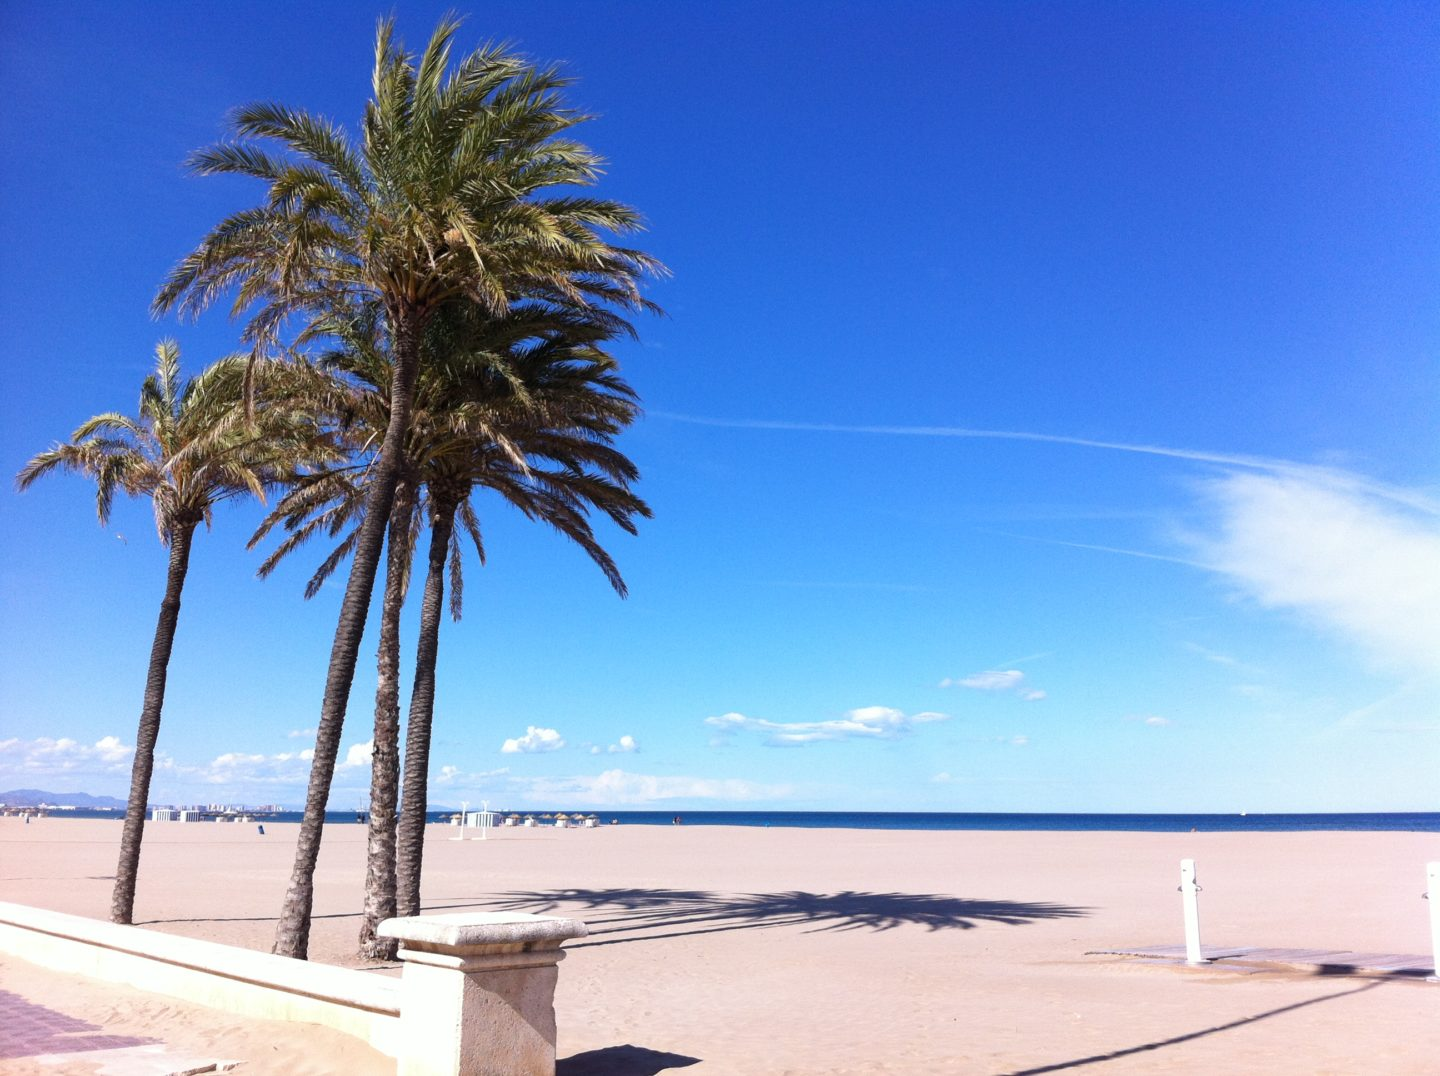 What to do in Valencia in Spain, the city of sun?